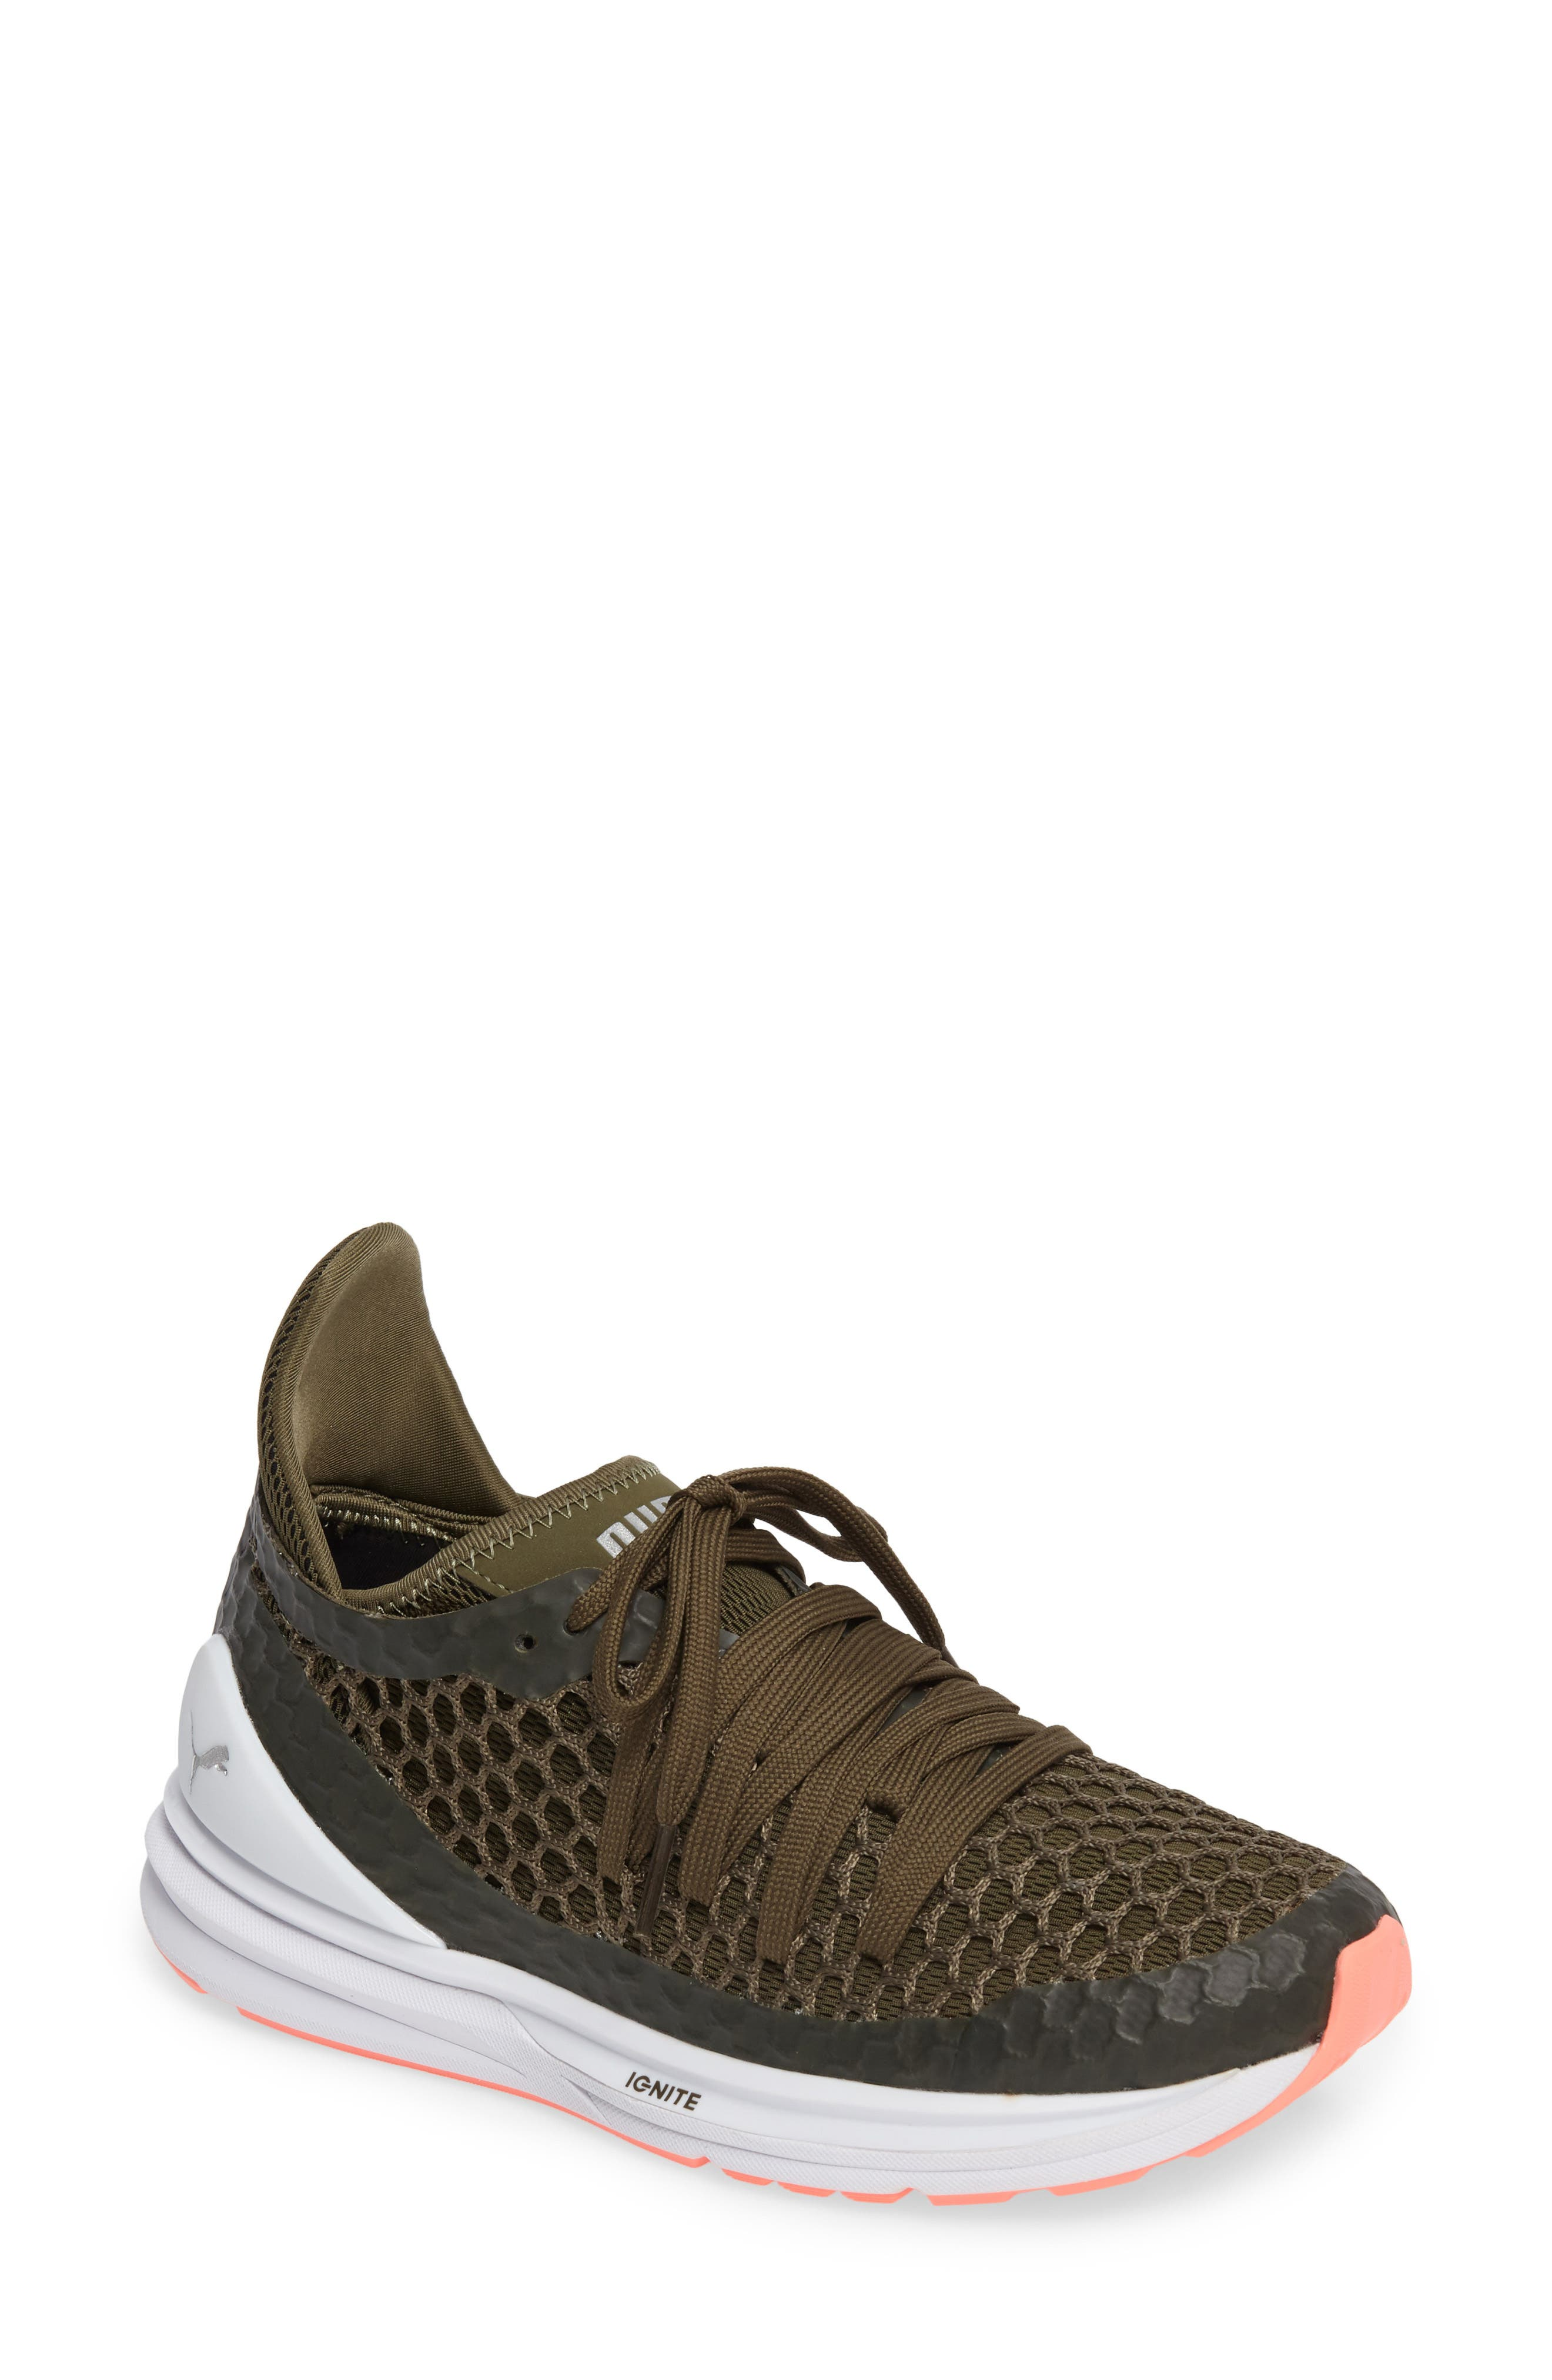 Alternate Image 1 Selected - PUMA Ignite Limitless Netfit Running Shoe (Women)